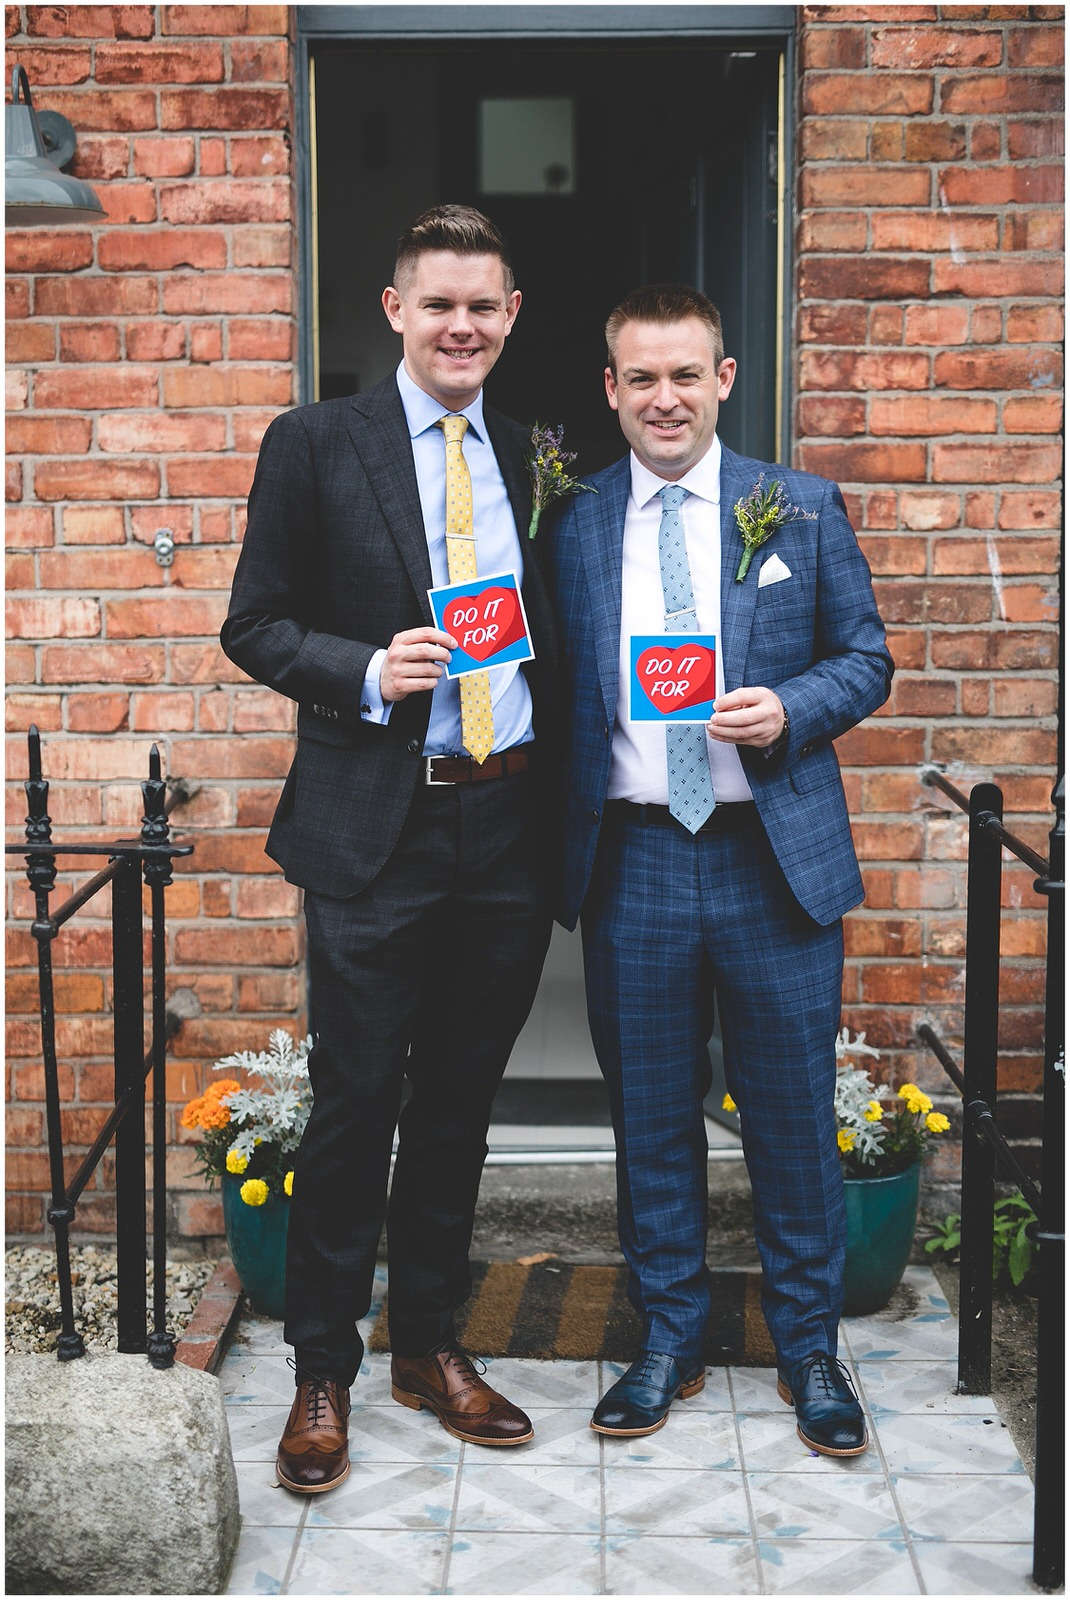 Do it for love - Groom & Groom portraits